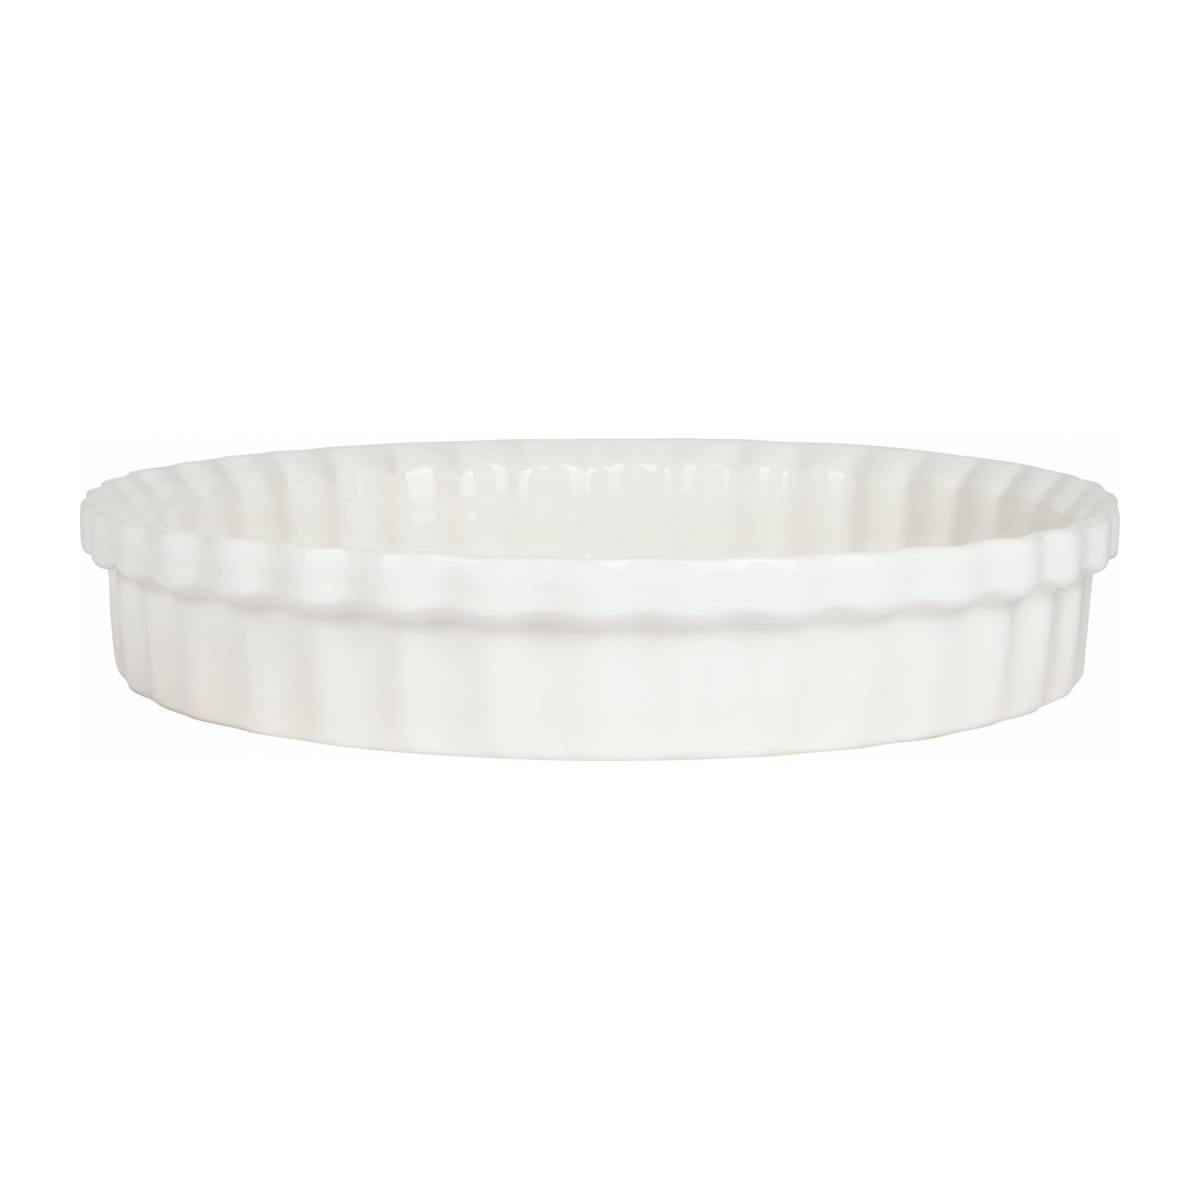 Pie dish made of faience 28cm, white n°1